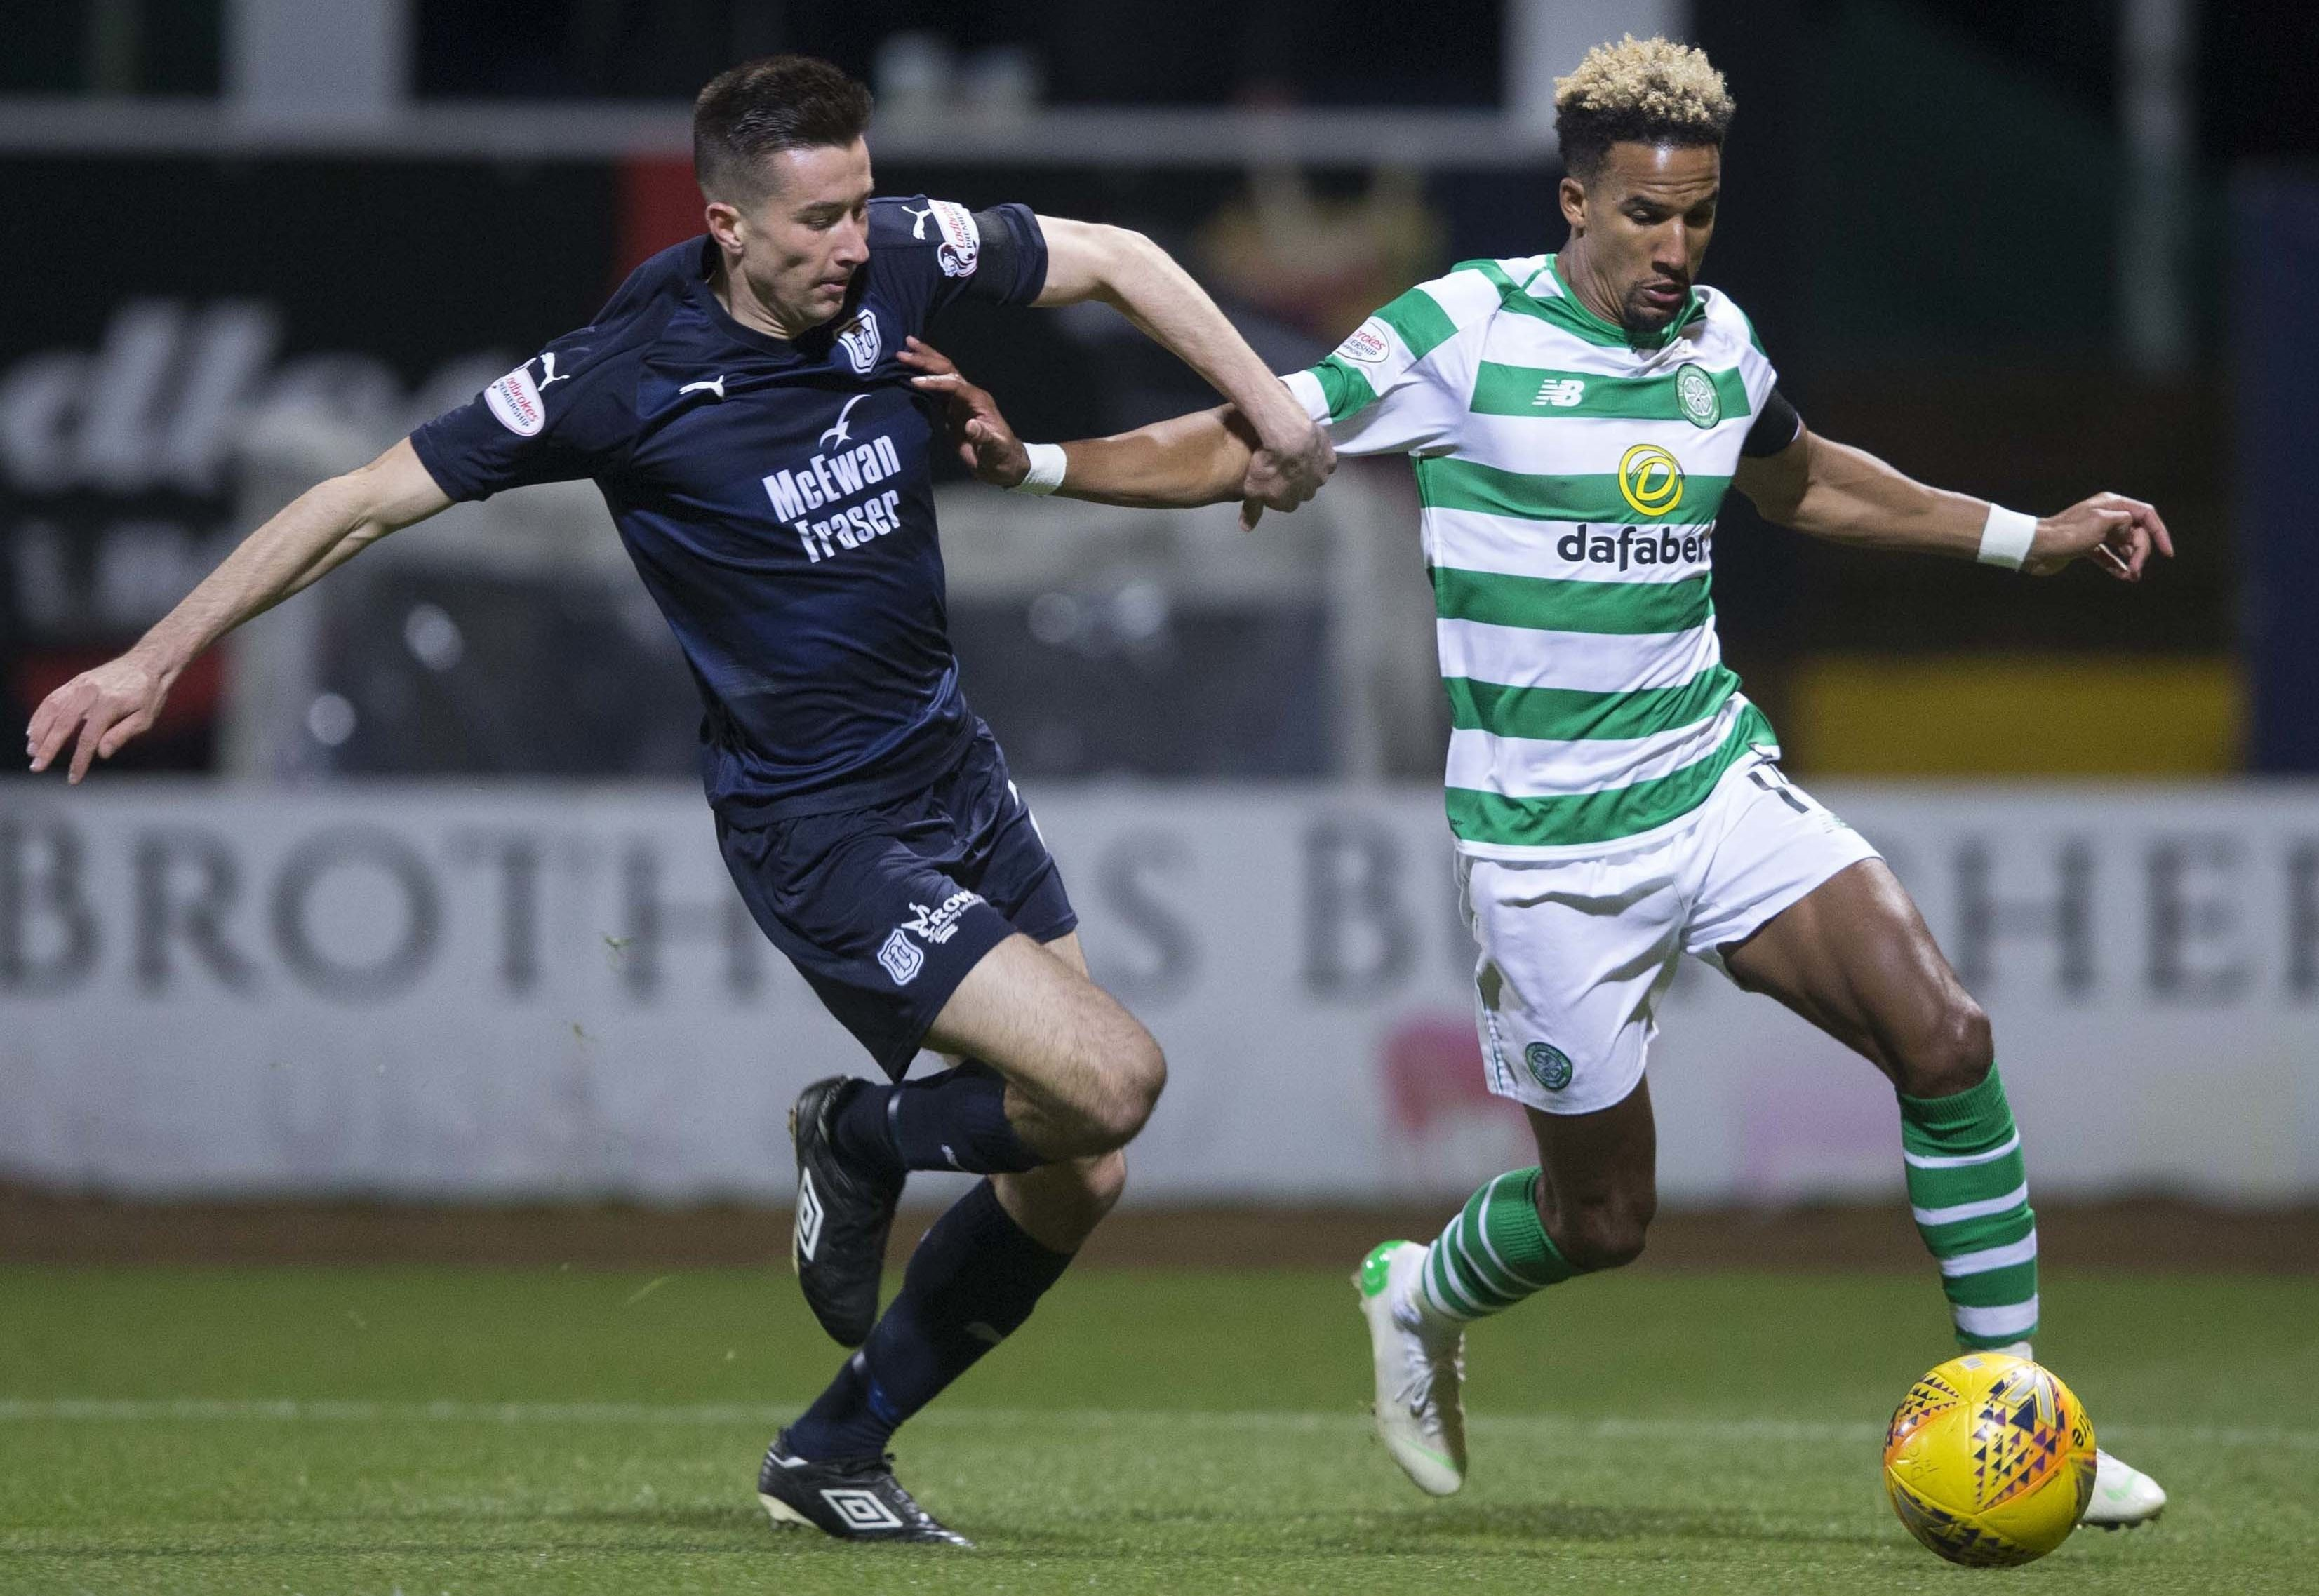 Cammy Kerr challenges Celtic winger Scott Sinclair on Wednesday night.